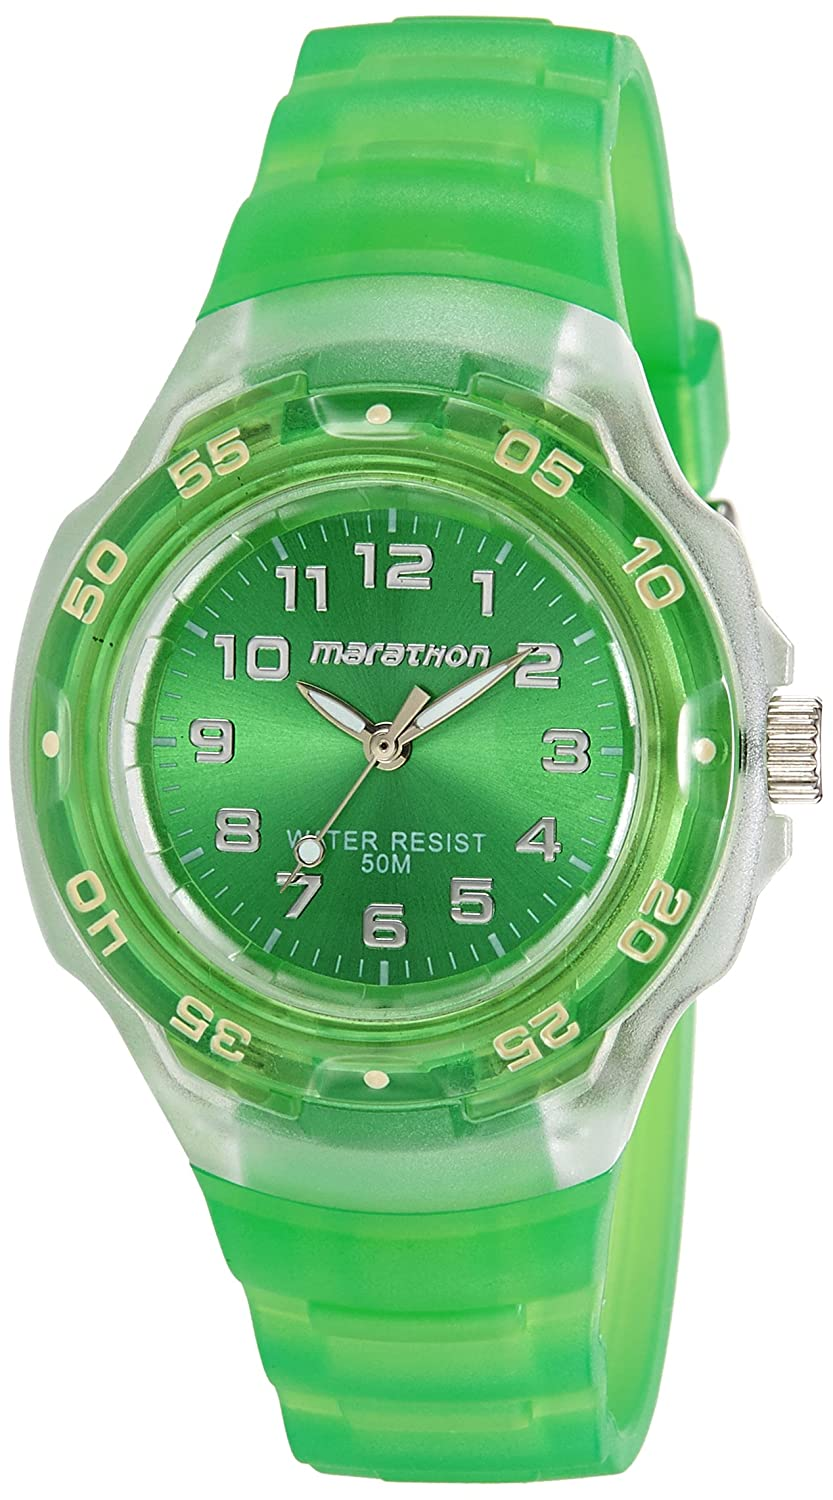 glass ceramic sale product men buy quality clasp green original watch for high rubber sell automatic watches hot top mens bezel wristwatch sapphire